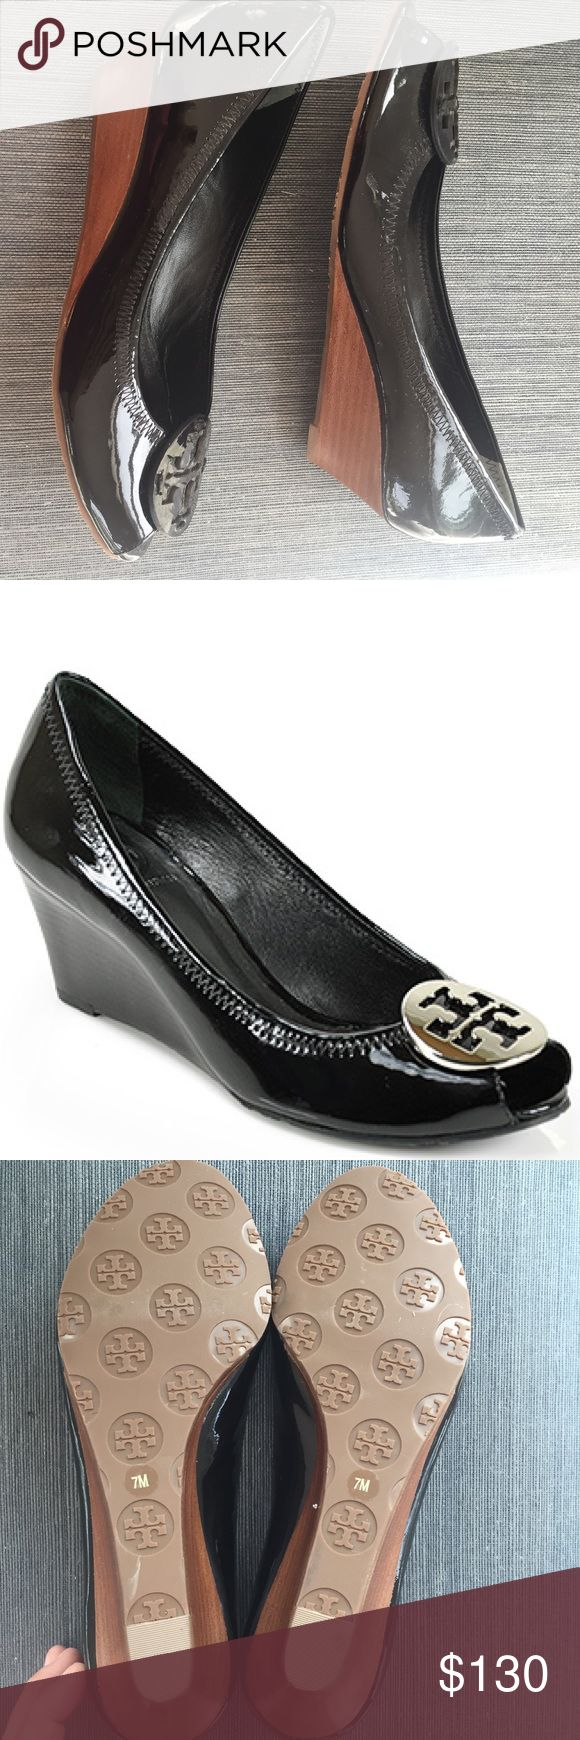 🎉TORY BURCH🎉 Sally Patent Peep Toe Wedge Tory Burch Sally patent black peep toe wedge had ballet construction with a little lift. Tonal patent Tory emblem is subtle but just the right amount of sophistication. NEVER WORN BRAND NEW. Make them yours!! Tory Burch Shoes Wedges